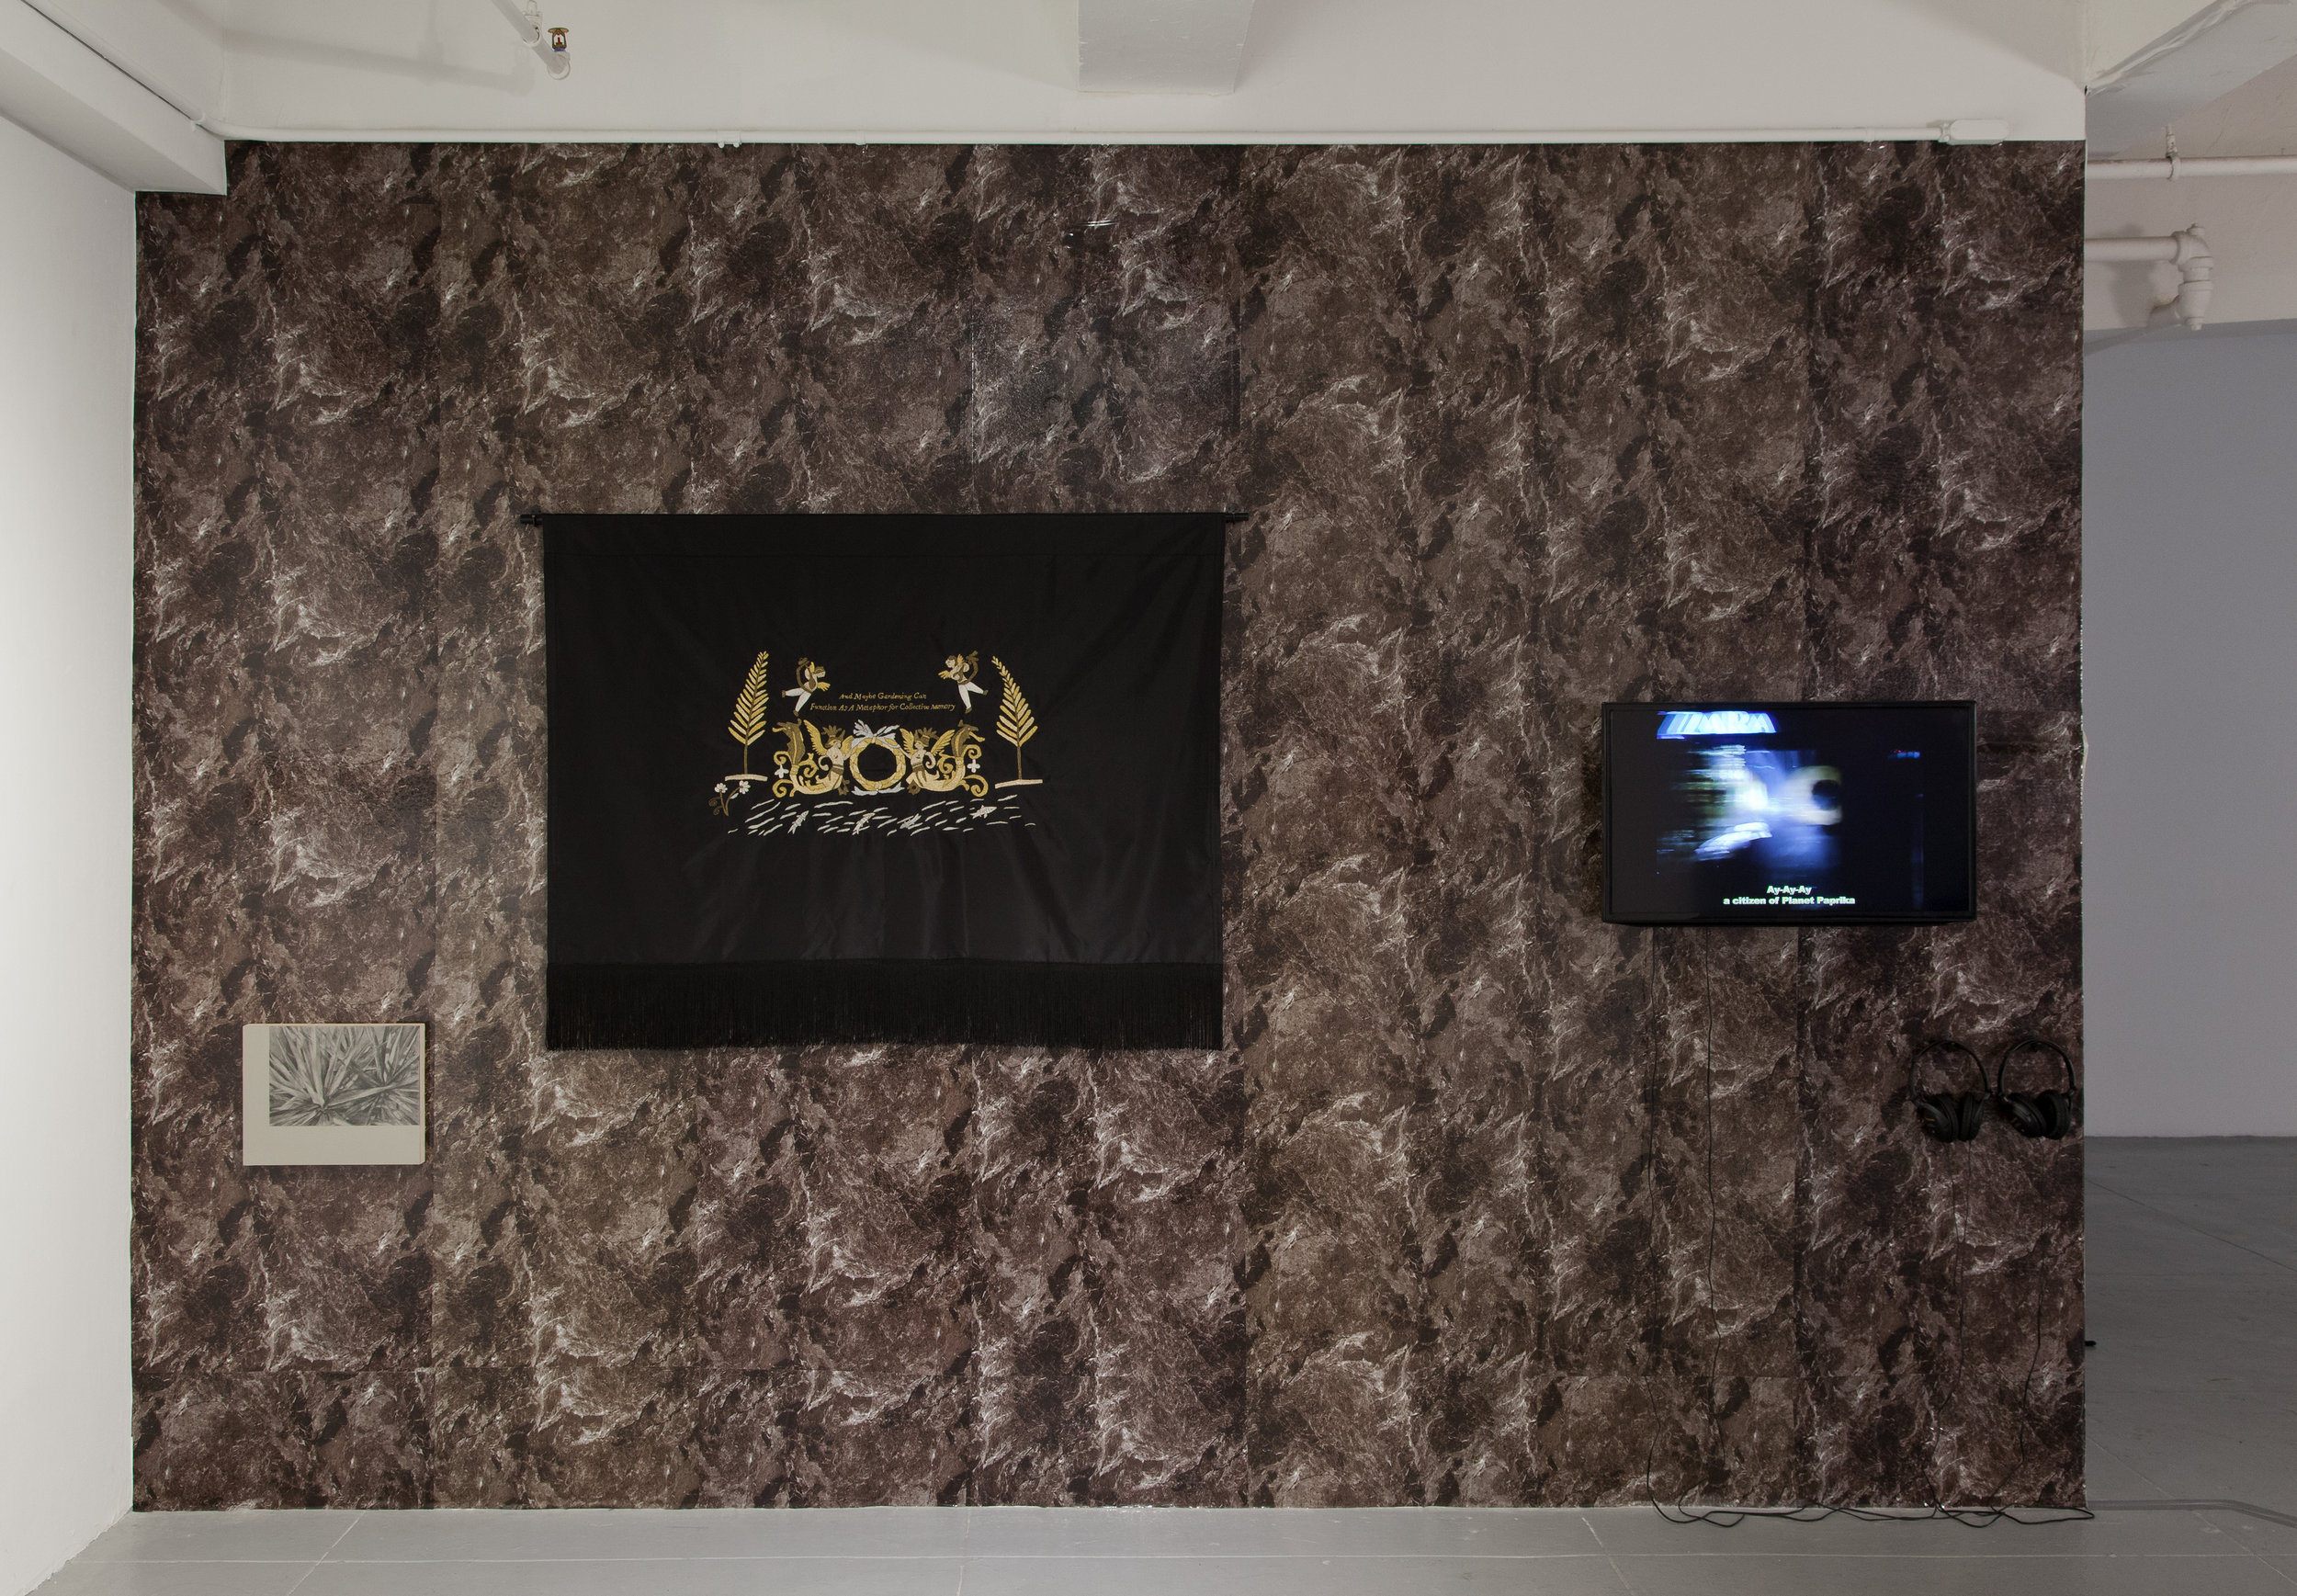 Uncanny Gardening II  (installation view), 2017, wallpaper, graphite, gesso and resin on wood panel, gold thread on silk, cotton fringe, metal rod, single channel video loop, 13x9 ft.